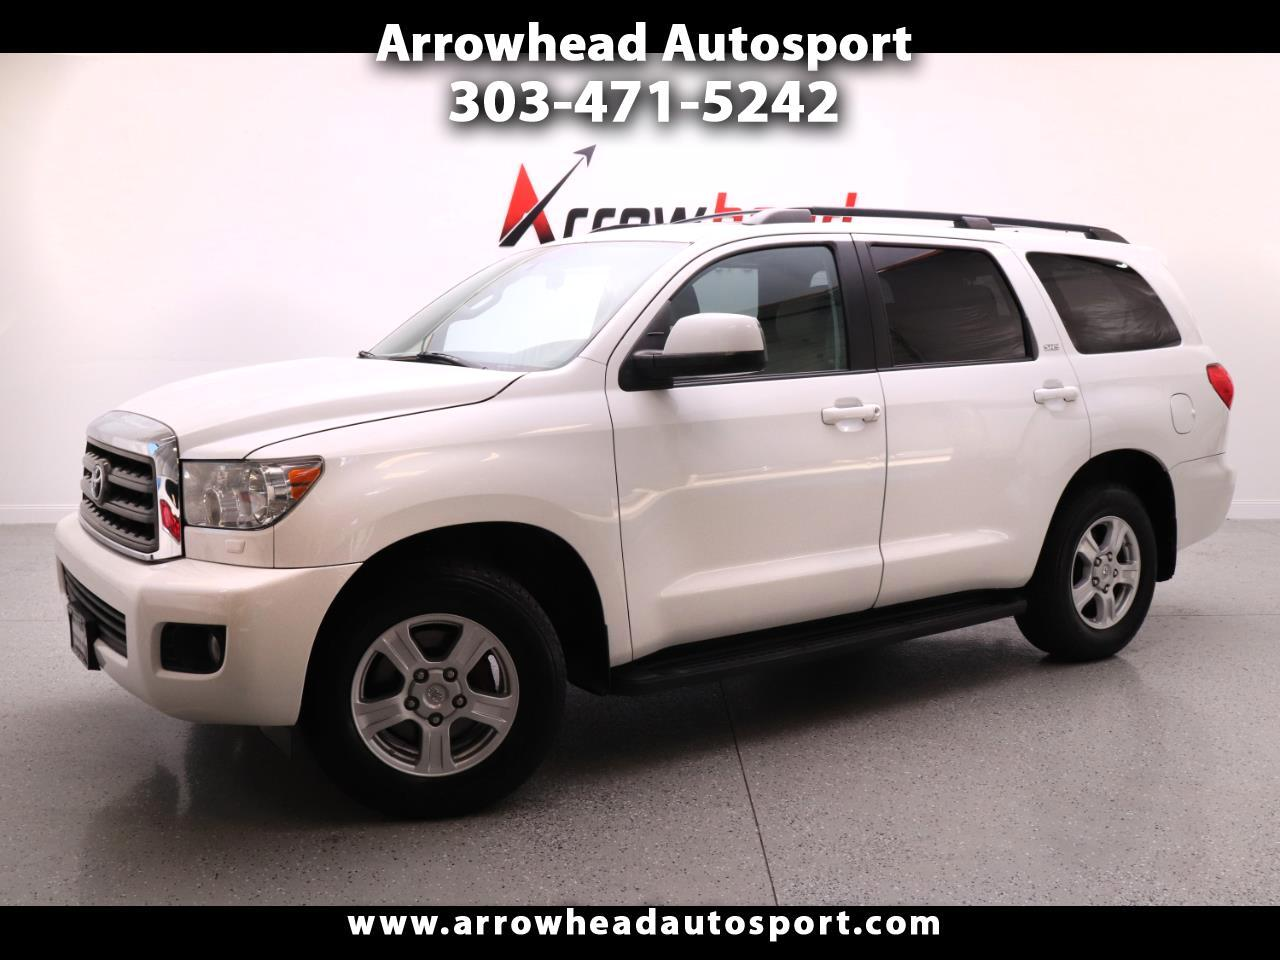 Used Cars For Sale Parker Co 80134 Arrowhead Autosport Toyota Sequoia Fuel Filter Location 2014 4wd 57l Sr5 Natl